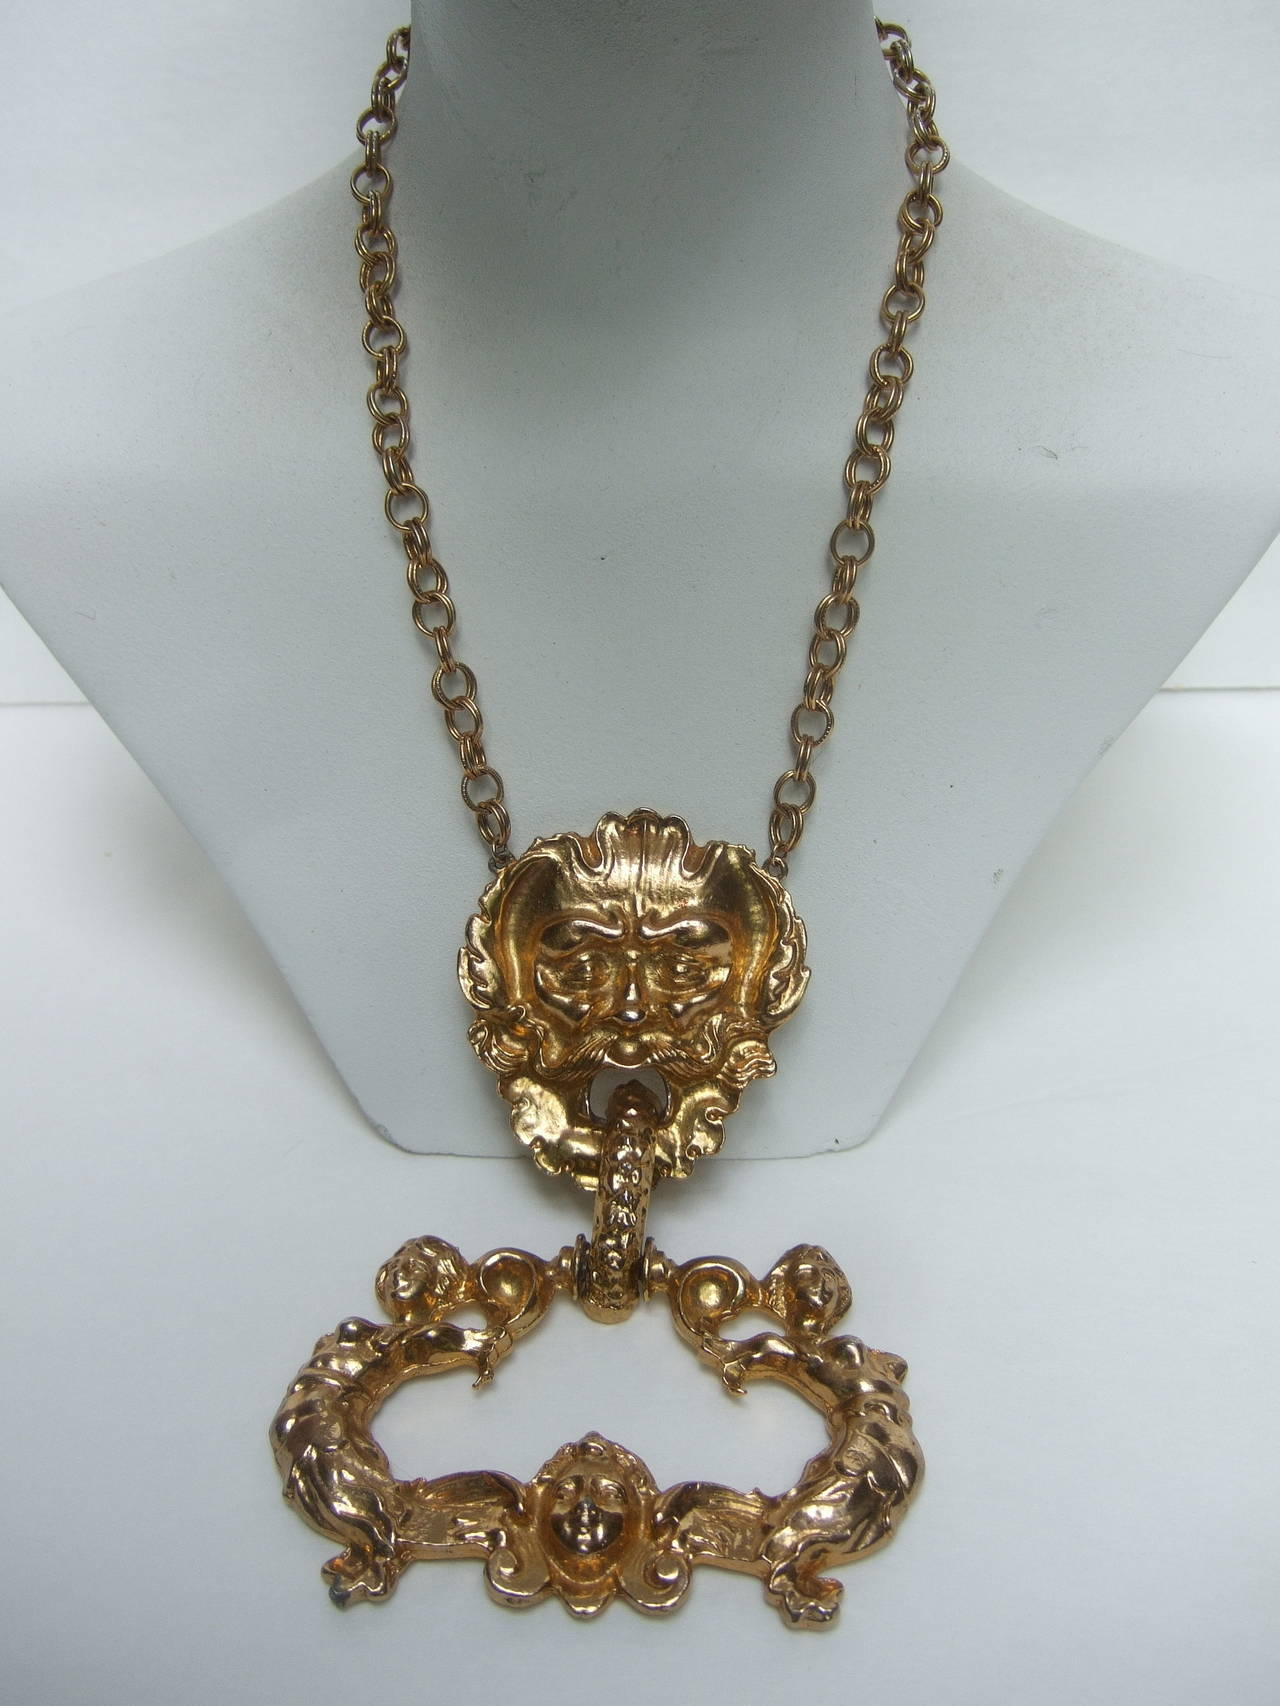 Massive gilt metal figural pendant necklace c 1970 The avant-garde doorknocker pendant necklace is designed with an ornate mythical figural man. Hinged to the figural head is a huge repousse pendant with a pair of siren figures with a woman's face